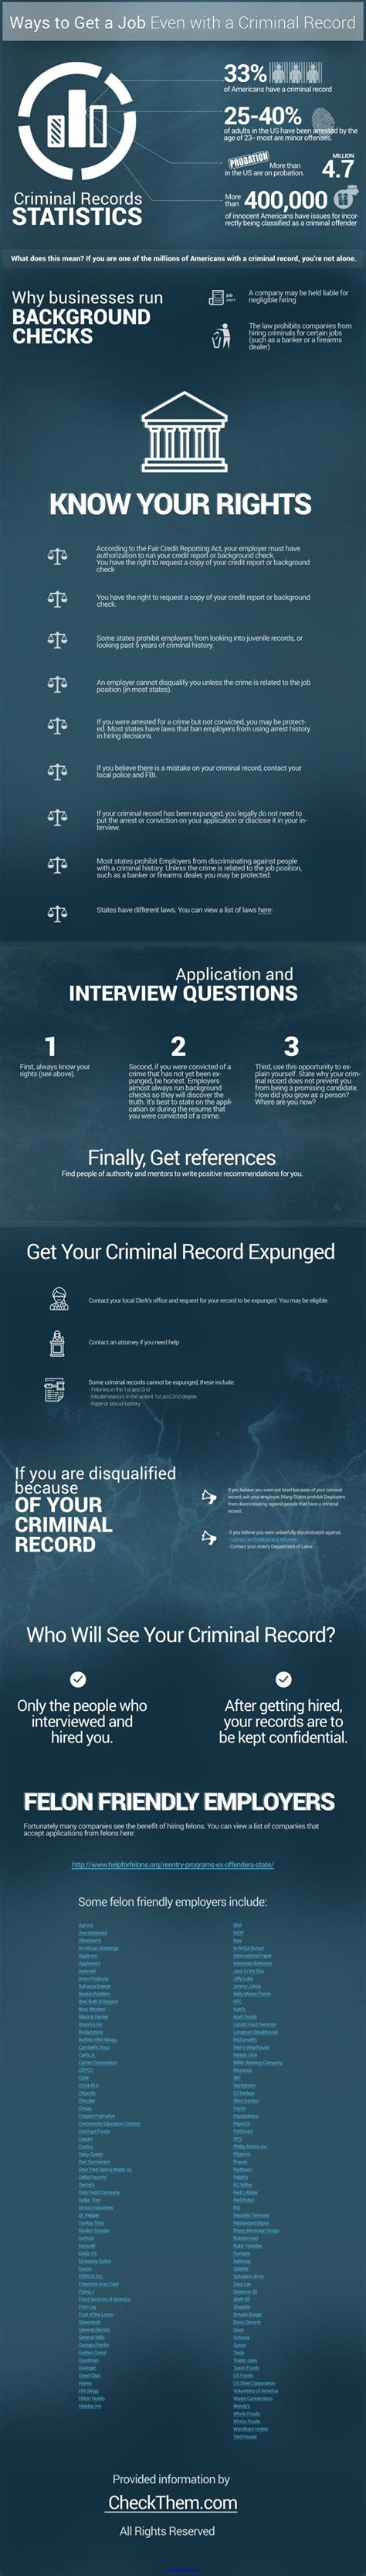 I 485 With Criminal Record Ppt Ways To Get A Even With A Criminal Record Powerpoint Presentation Id 7391461